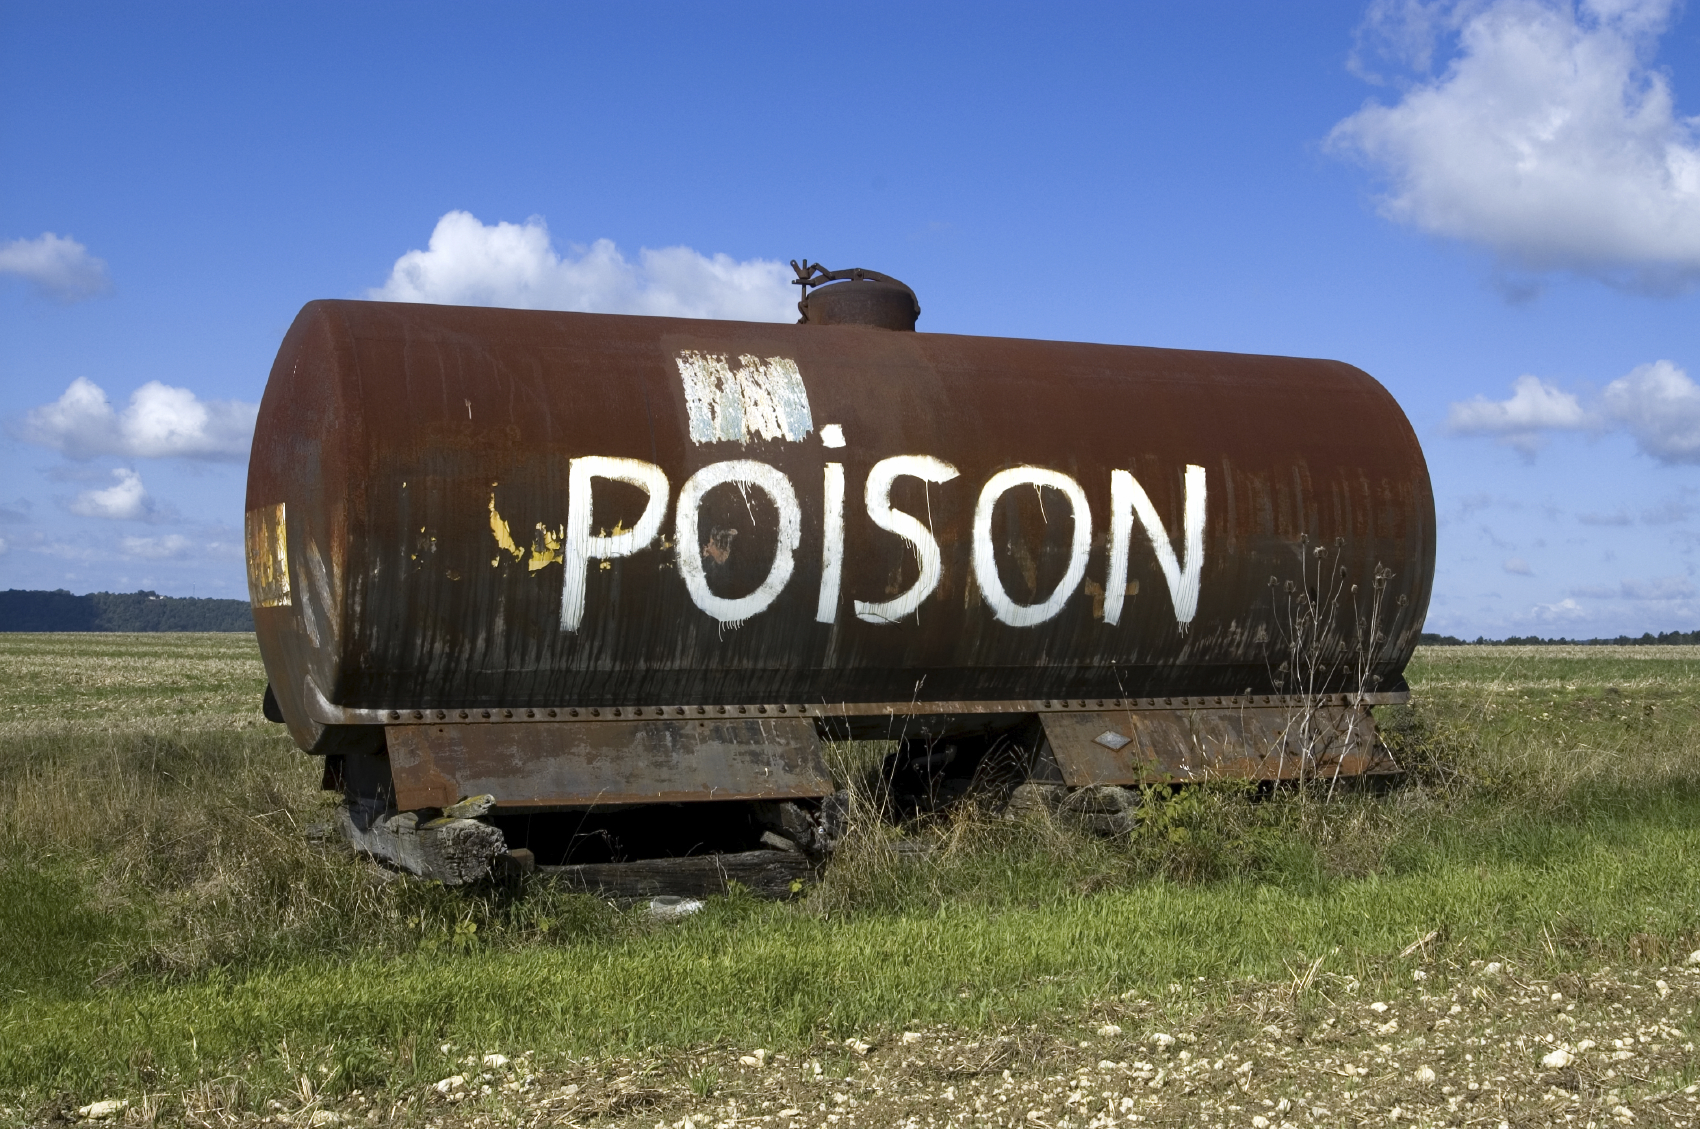 Poison painted on container in field